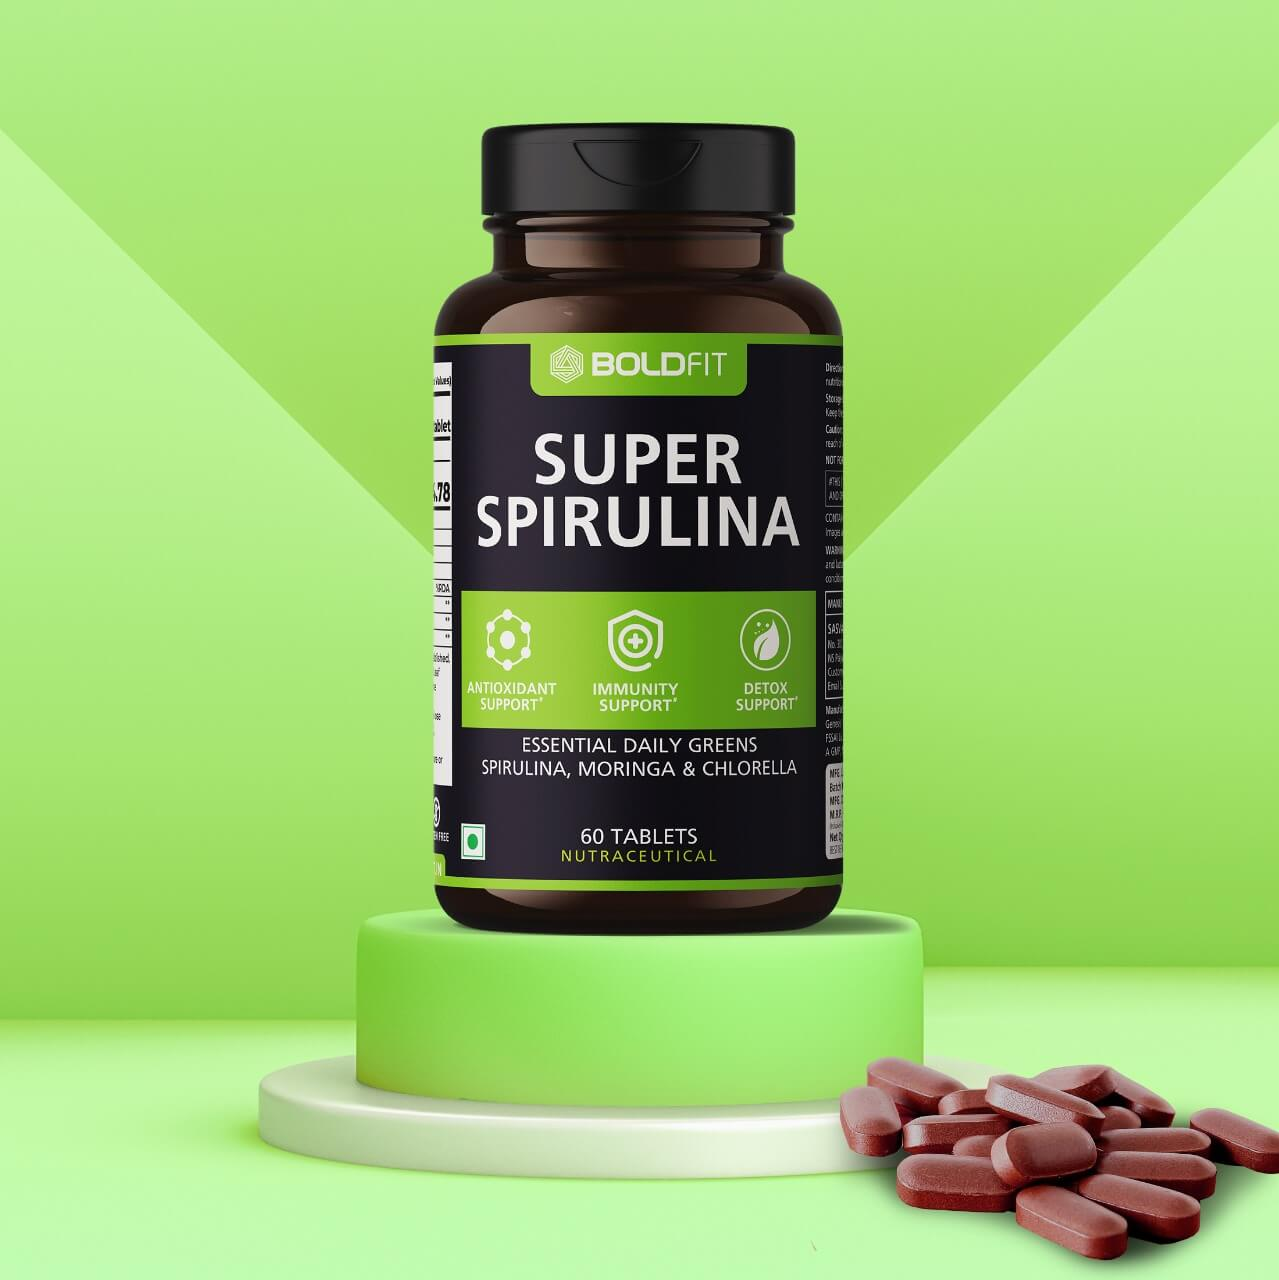 Boldfit Spirulina 500 Mg Supplement